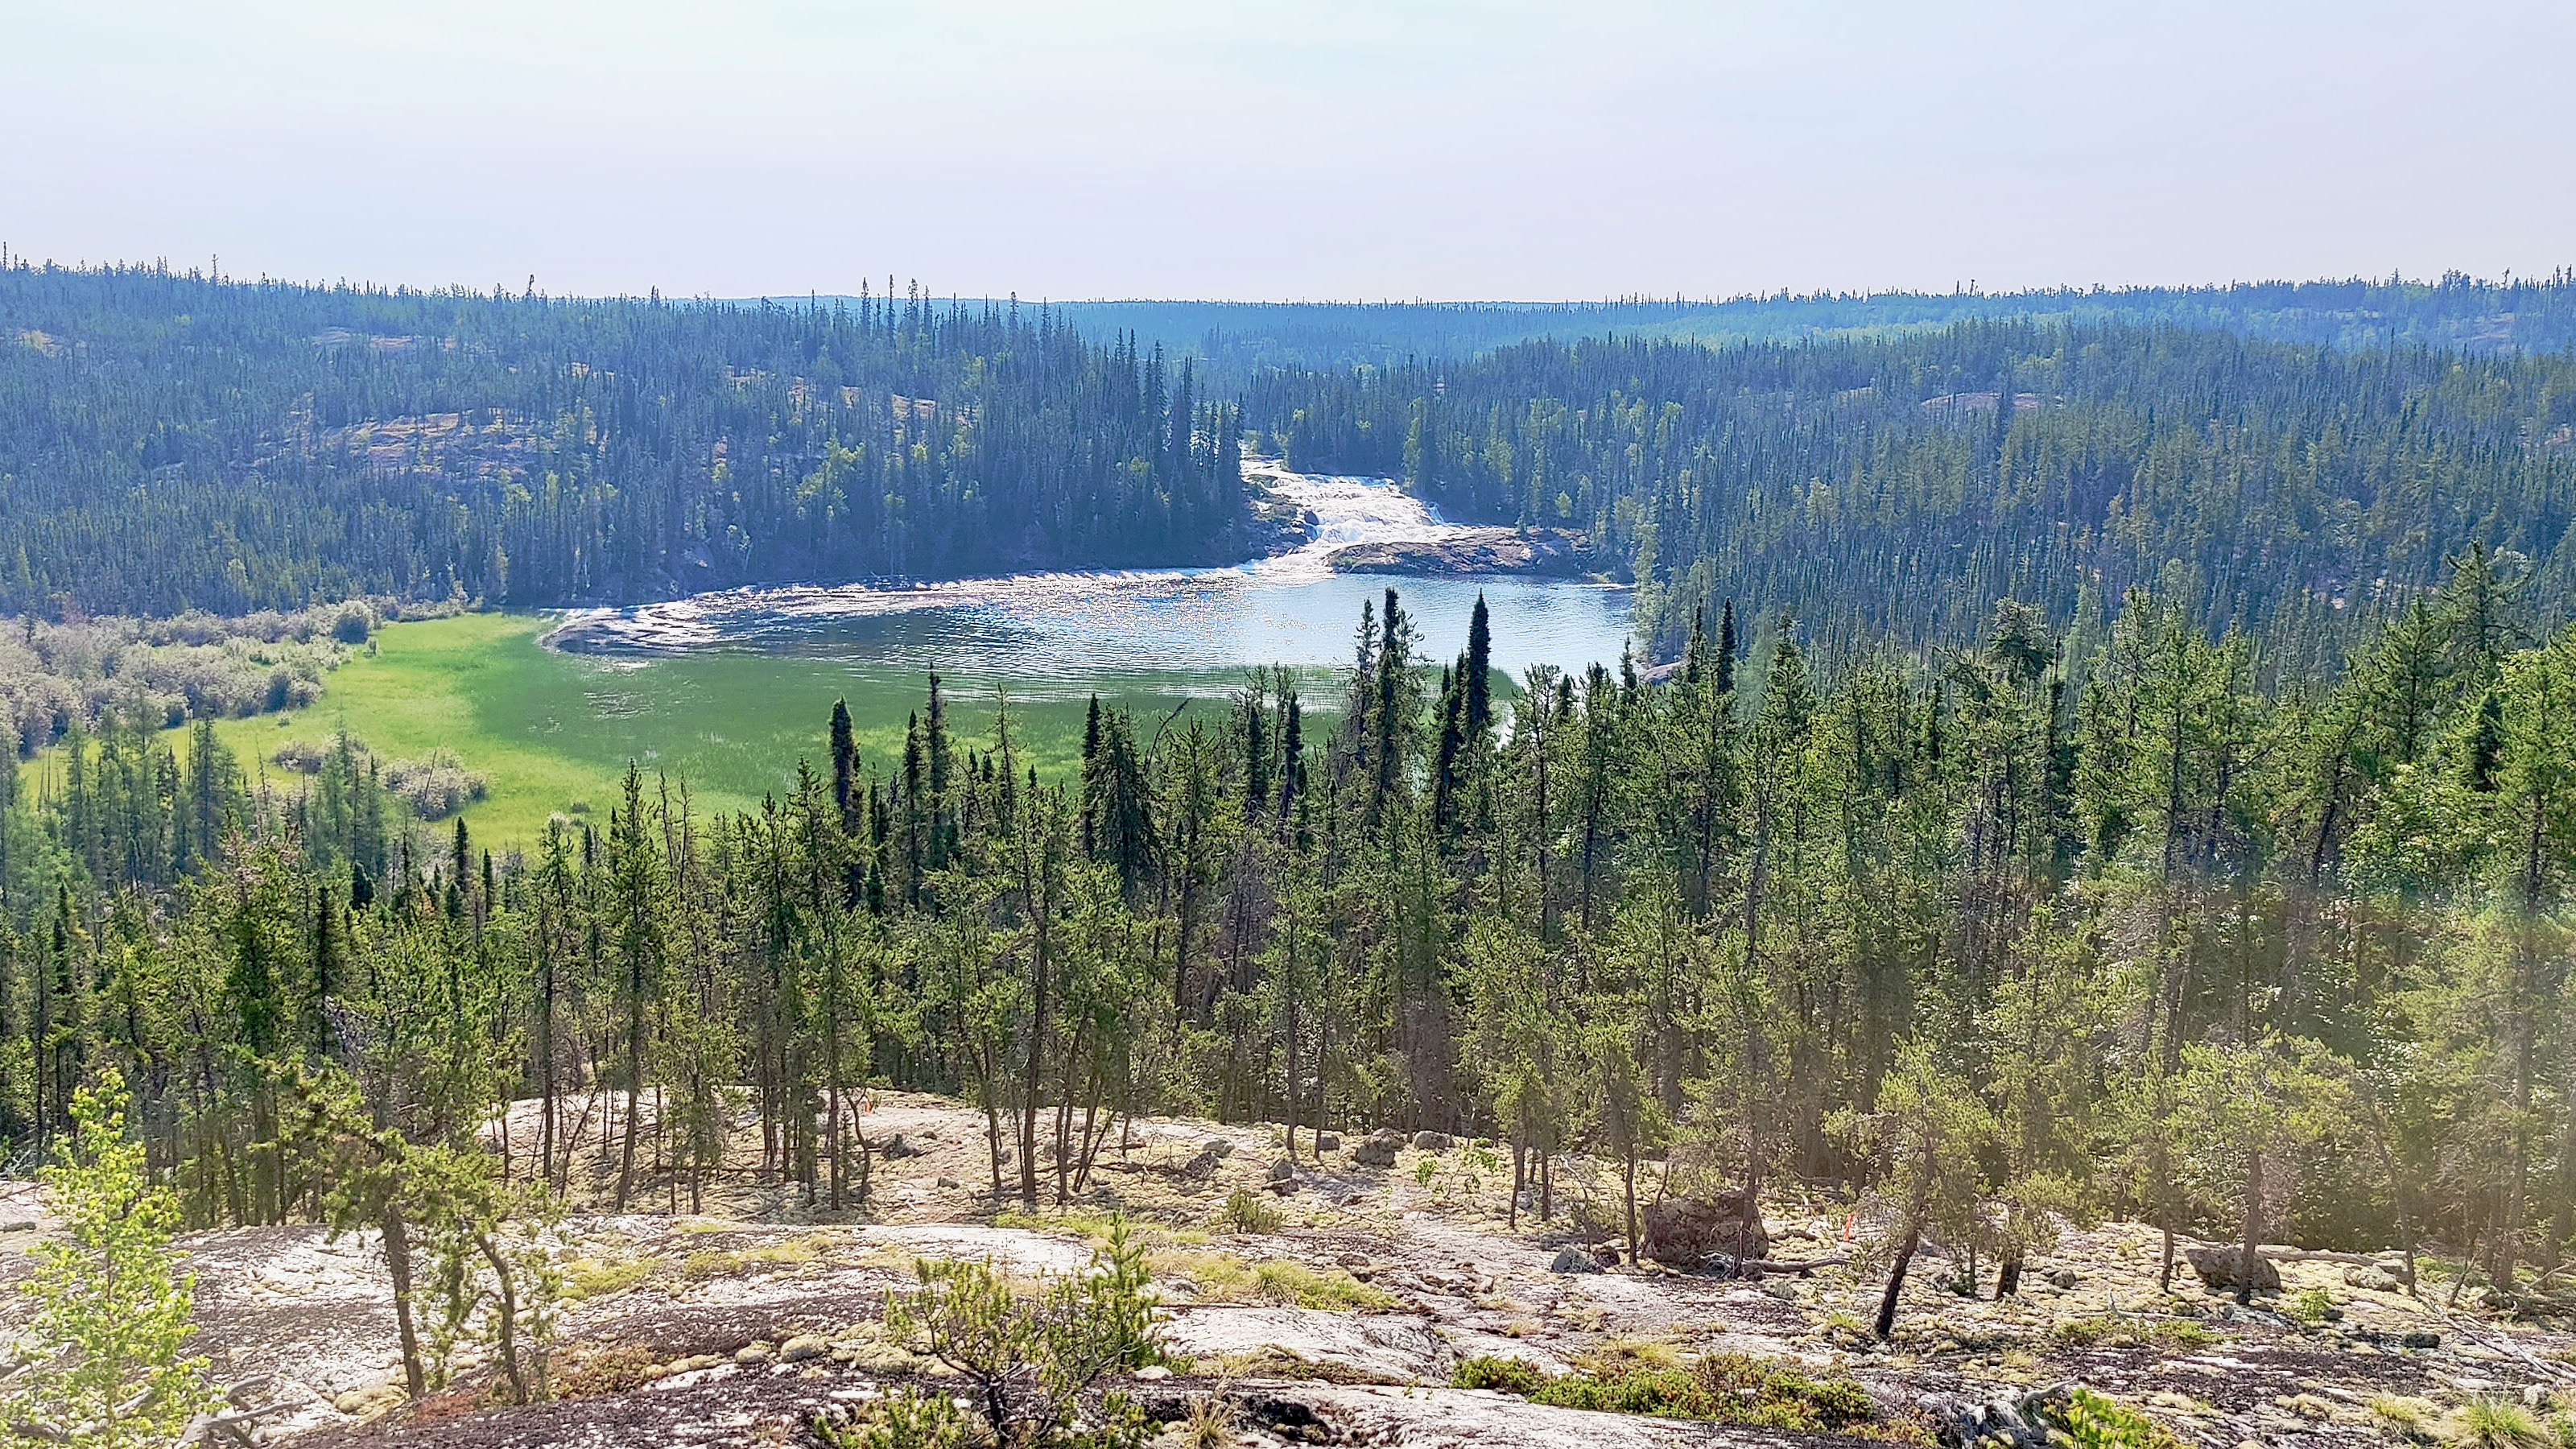 Yellowknife recorded its all-time highest temperature on Monday